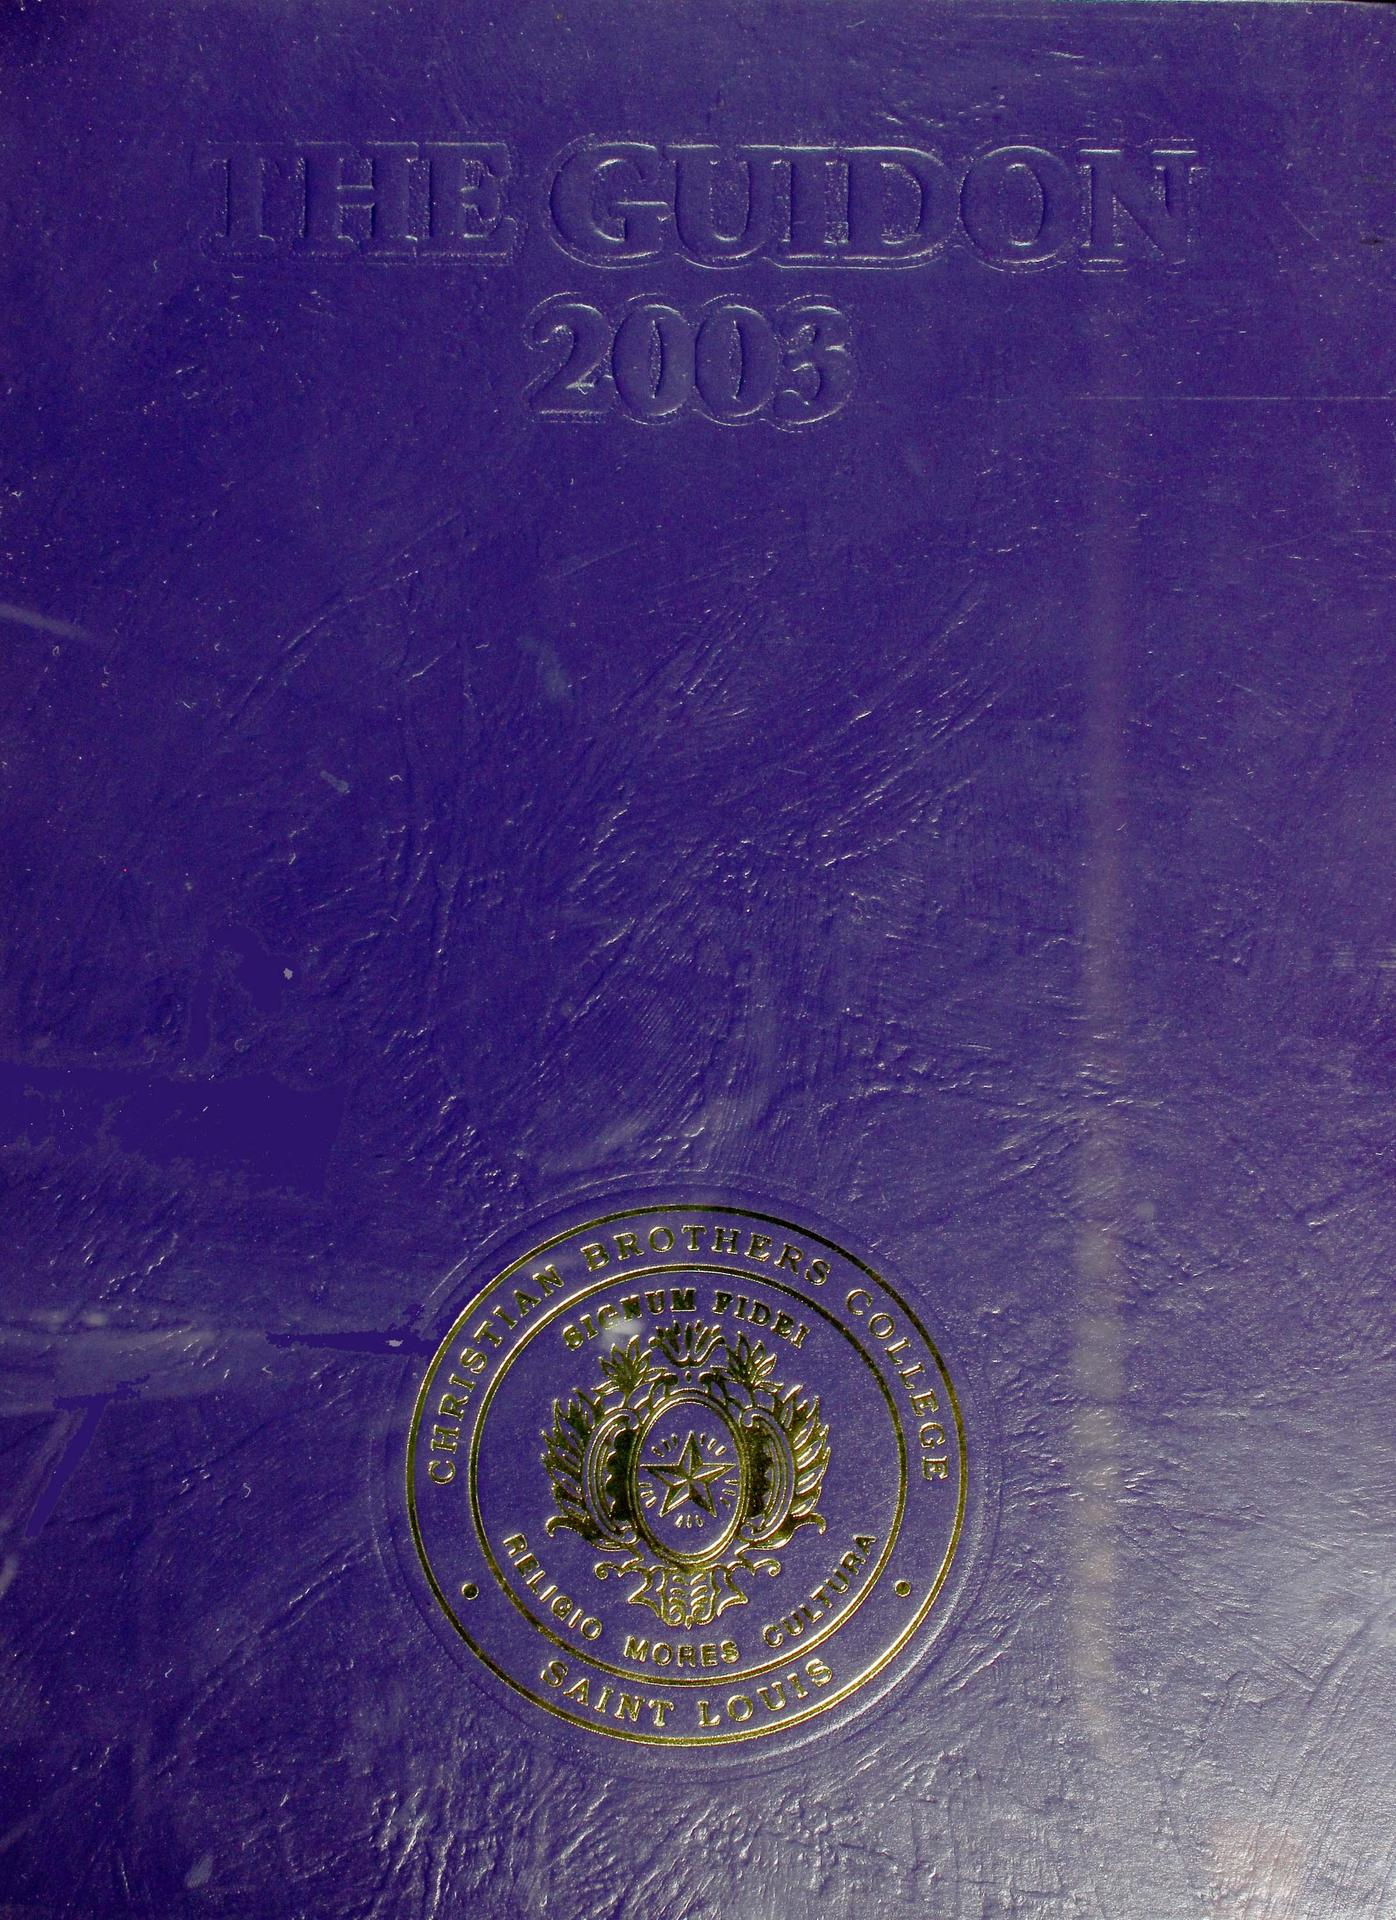 2003 CBC Yearbook